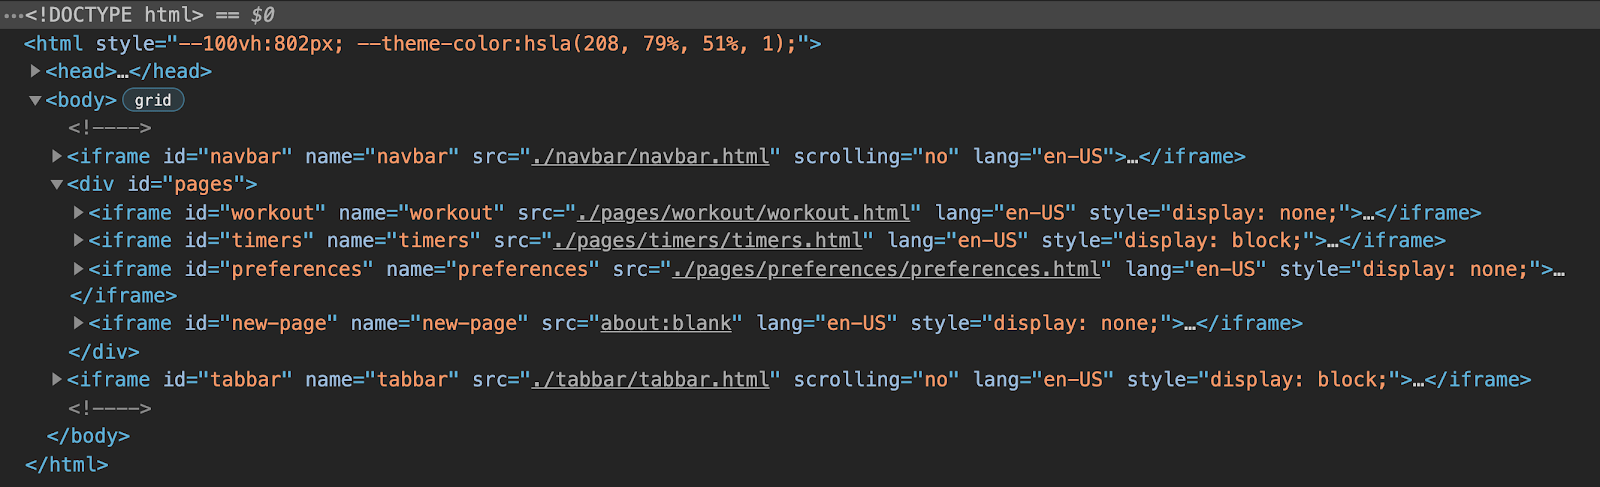 Chrome DevTools view of the HTML structure of the app showing that it consists of six iframes: one for the navbar, one for the tabbar, and three grouped ones for each page of the app, with a final placeholder iframe for dynamic pages.